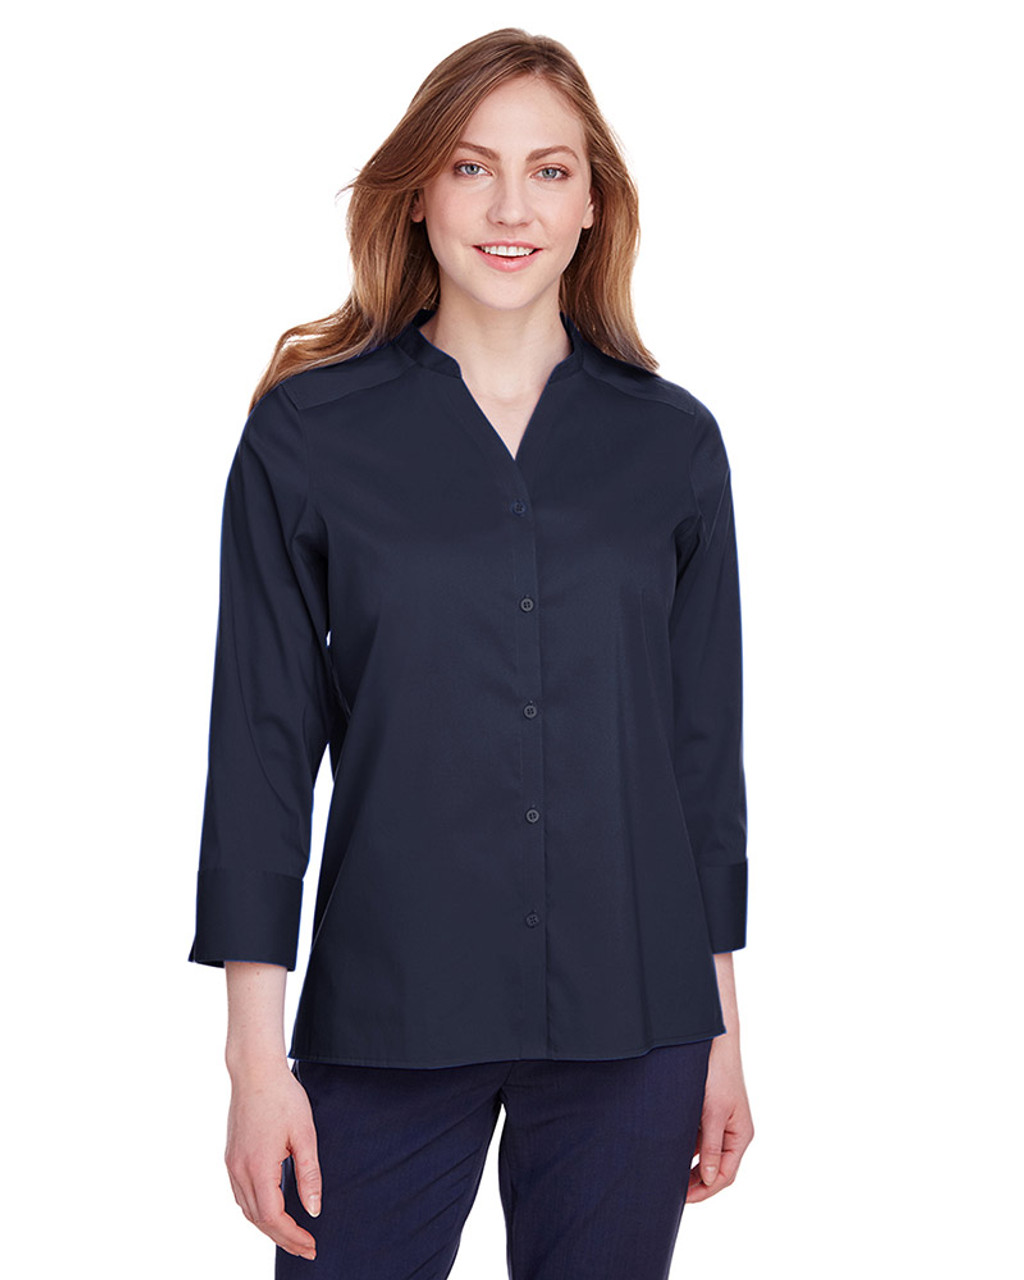 Navy - DG560W Devon & Jones Ladies' Crown Collection™ Stretch Broadcloth 3/4 Sleeve Blouse | Blankclothing.ca